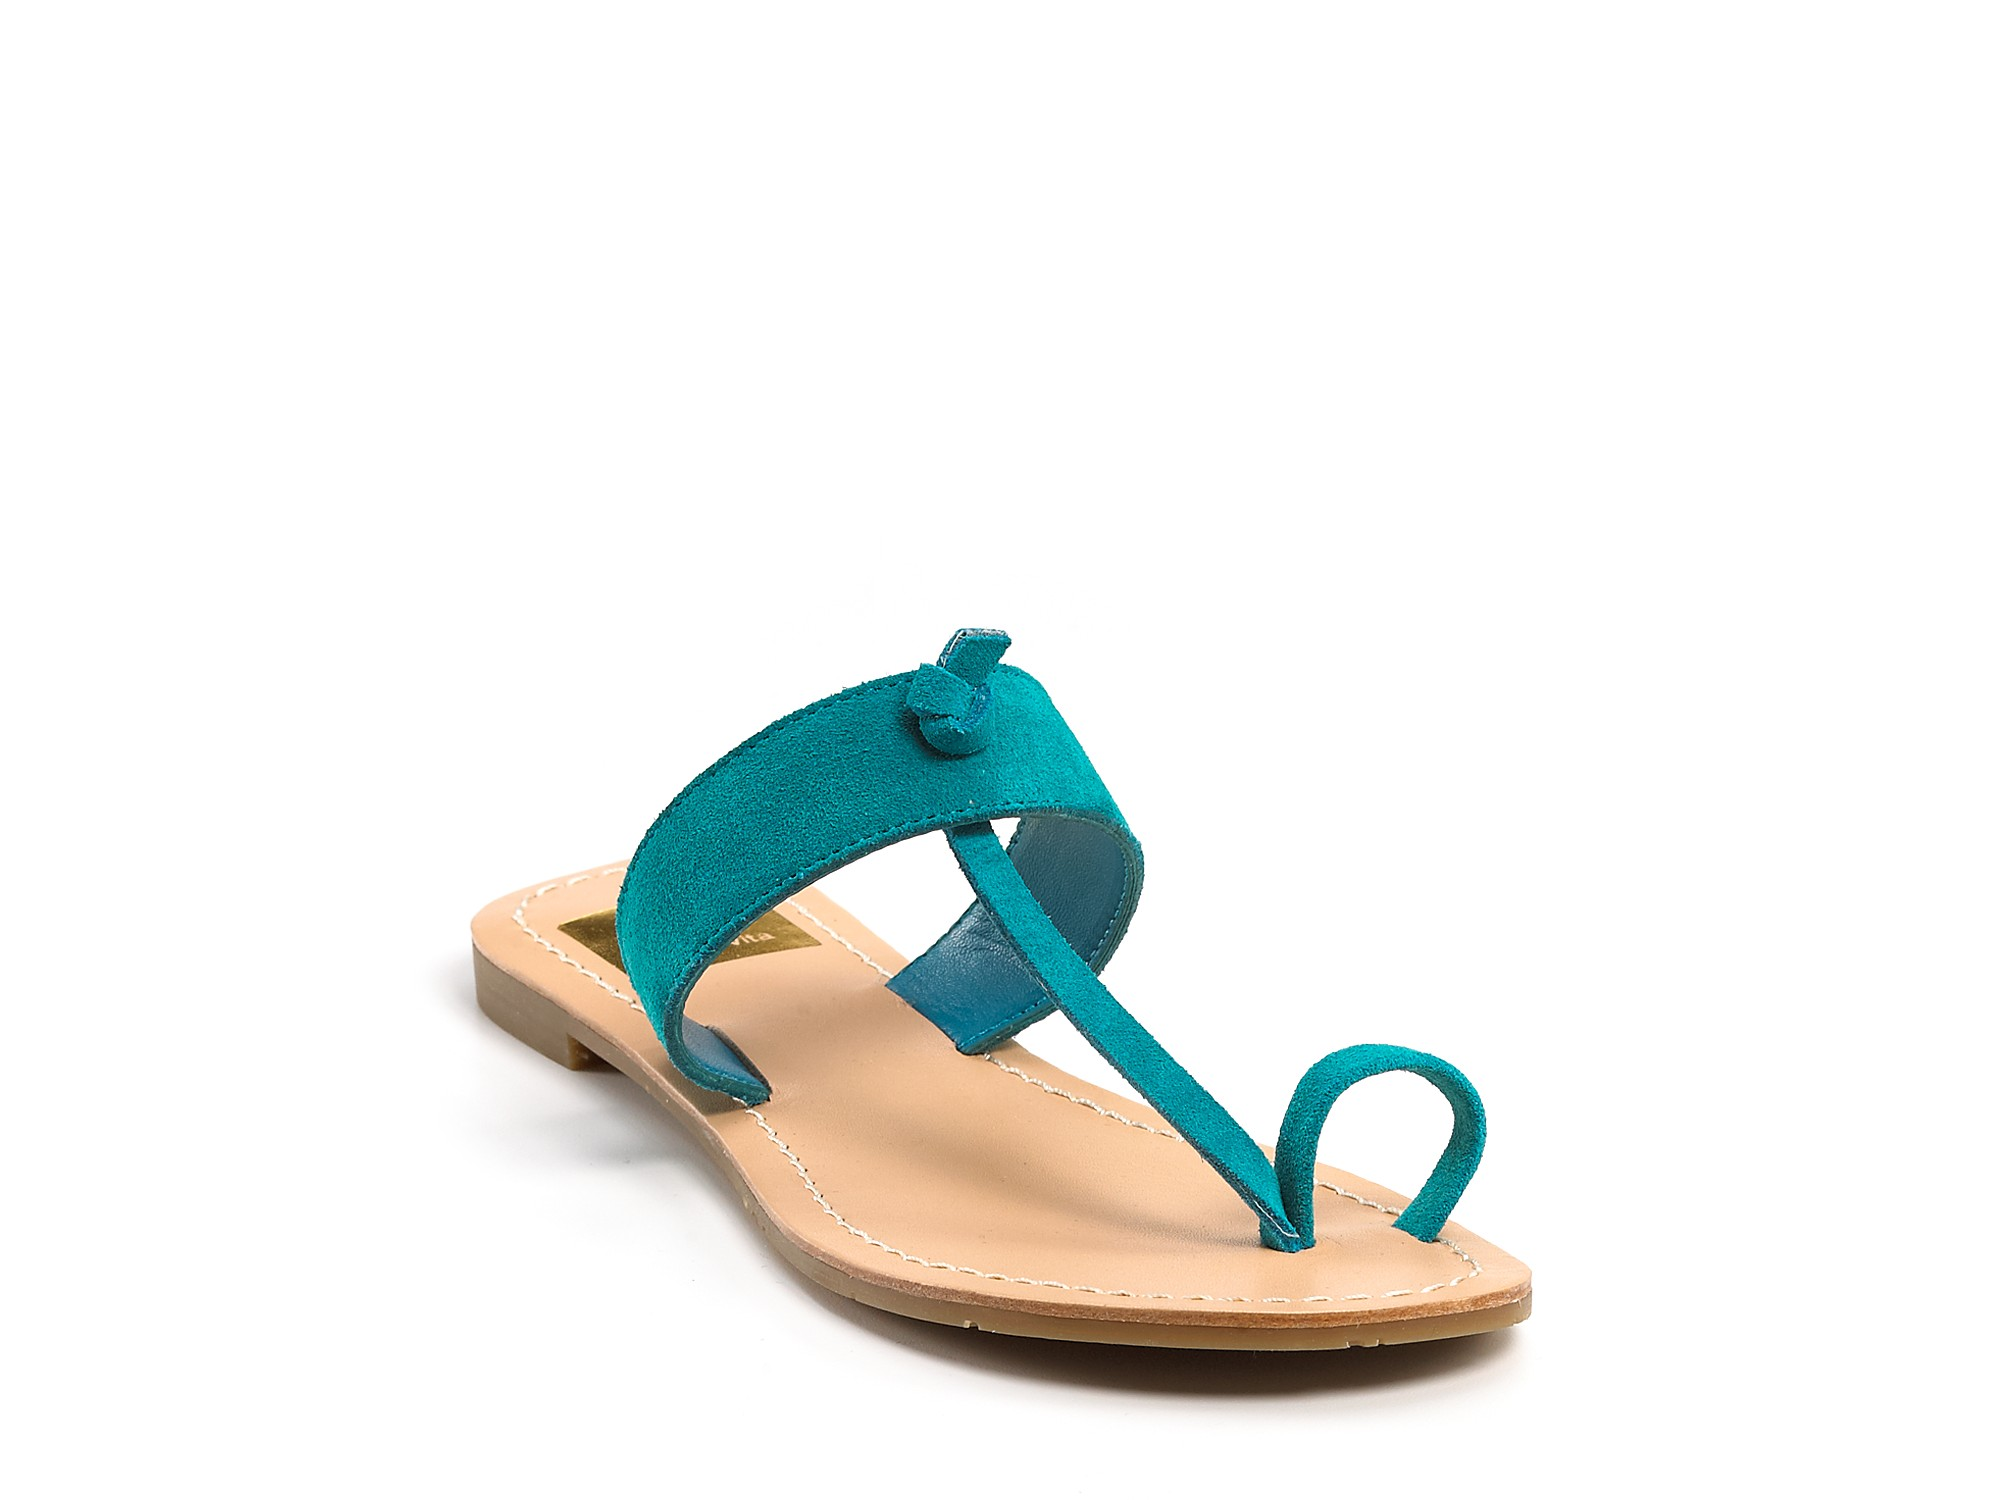 Dolce Vita Jaiden Sandal in Nude Suede (Natural) - Lyst